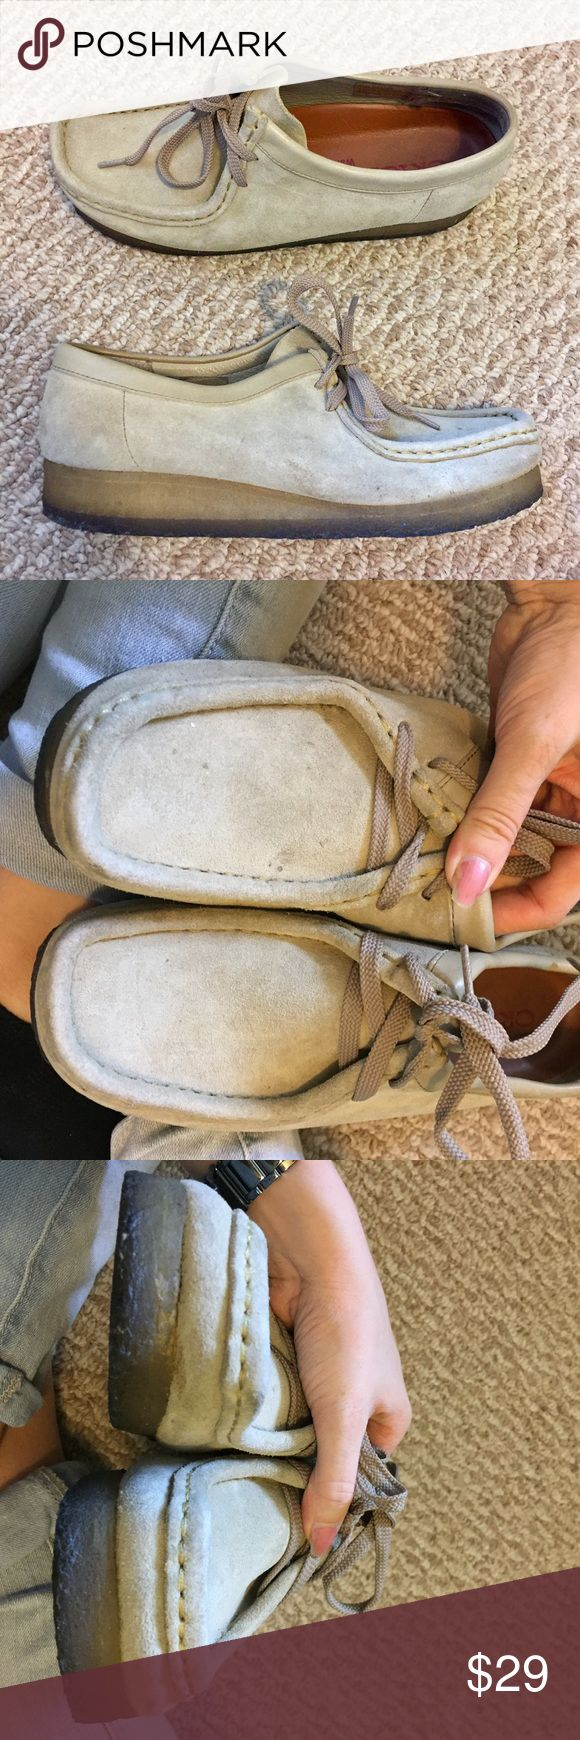 Clarks Wallabees EUC Size 9 Women's Excellent used condition. Very few stains on the leather (all shown in photos). Very little wear to the heels/soles. Reasonable offers will be considered. Clarks Shoes Flats & Loafers